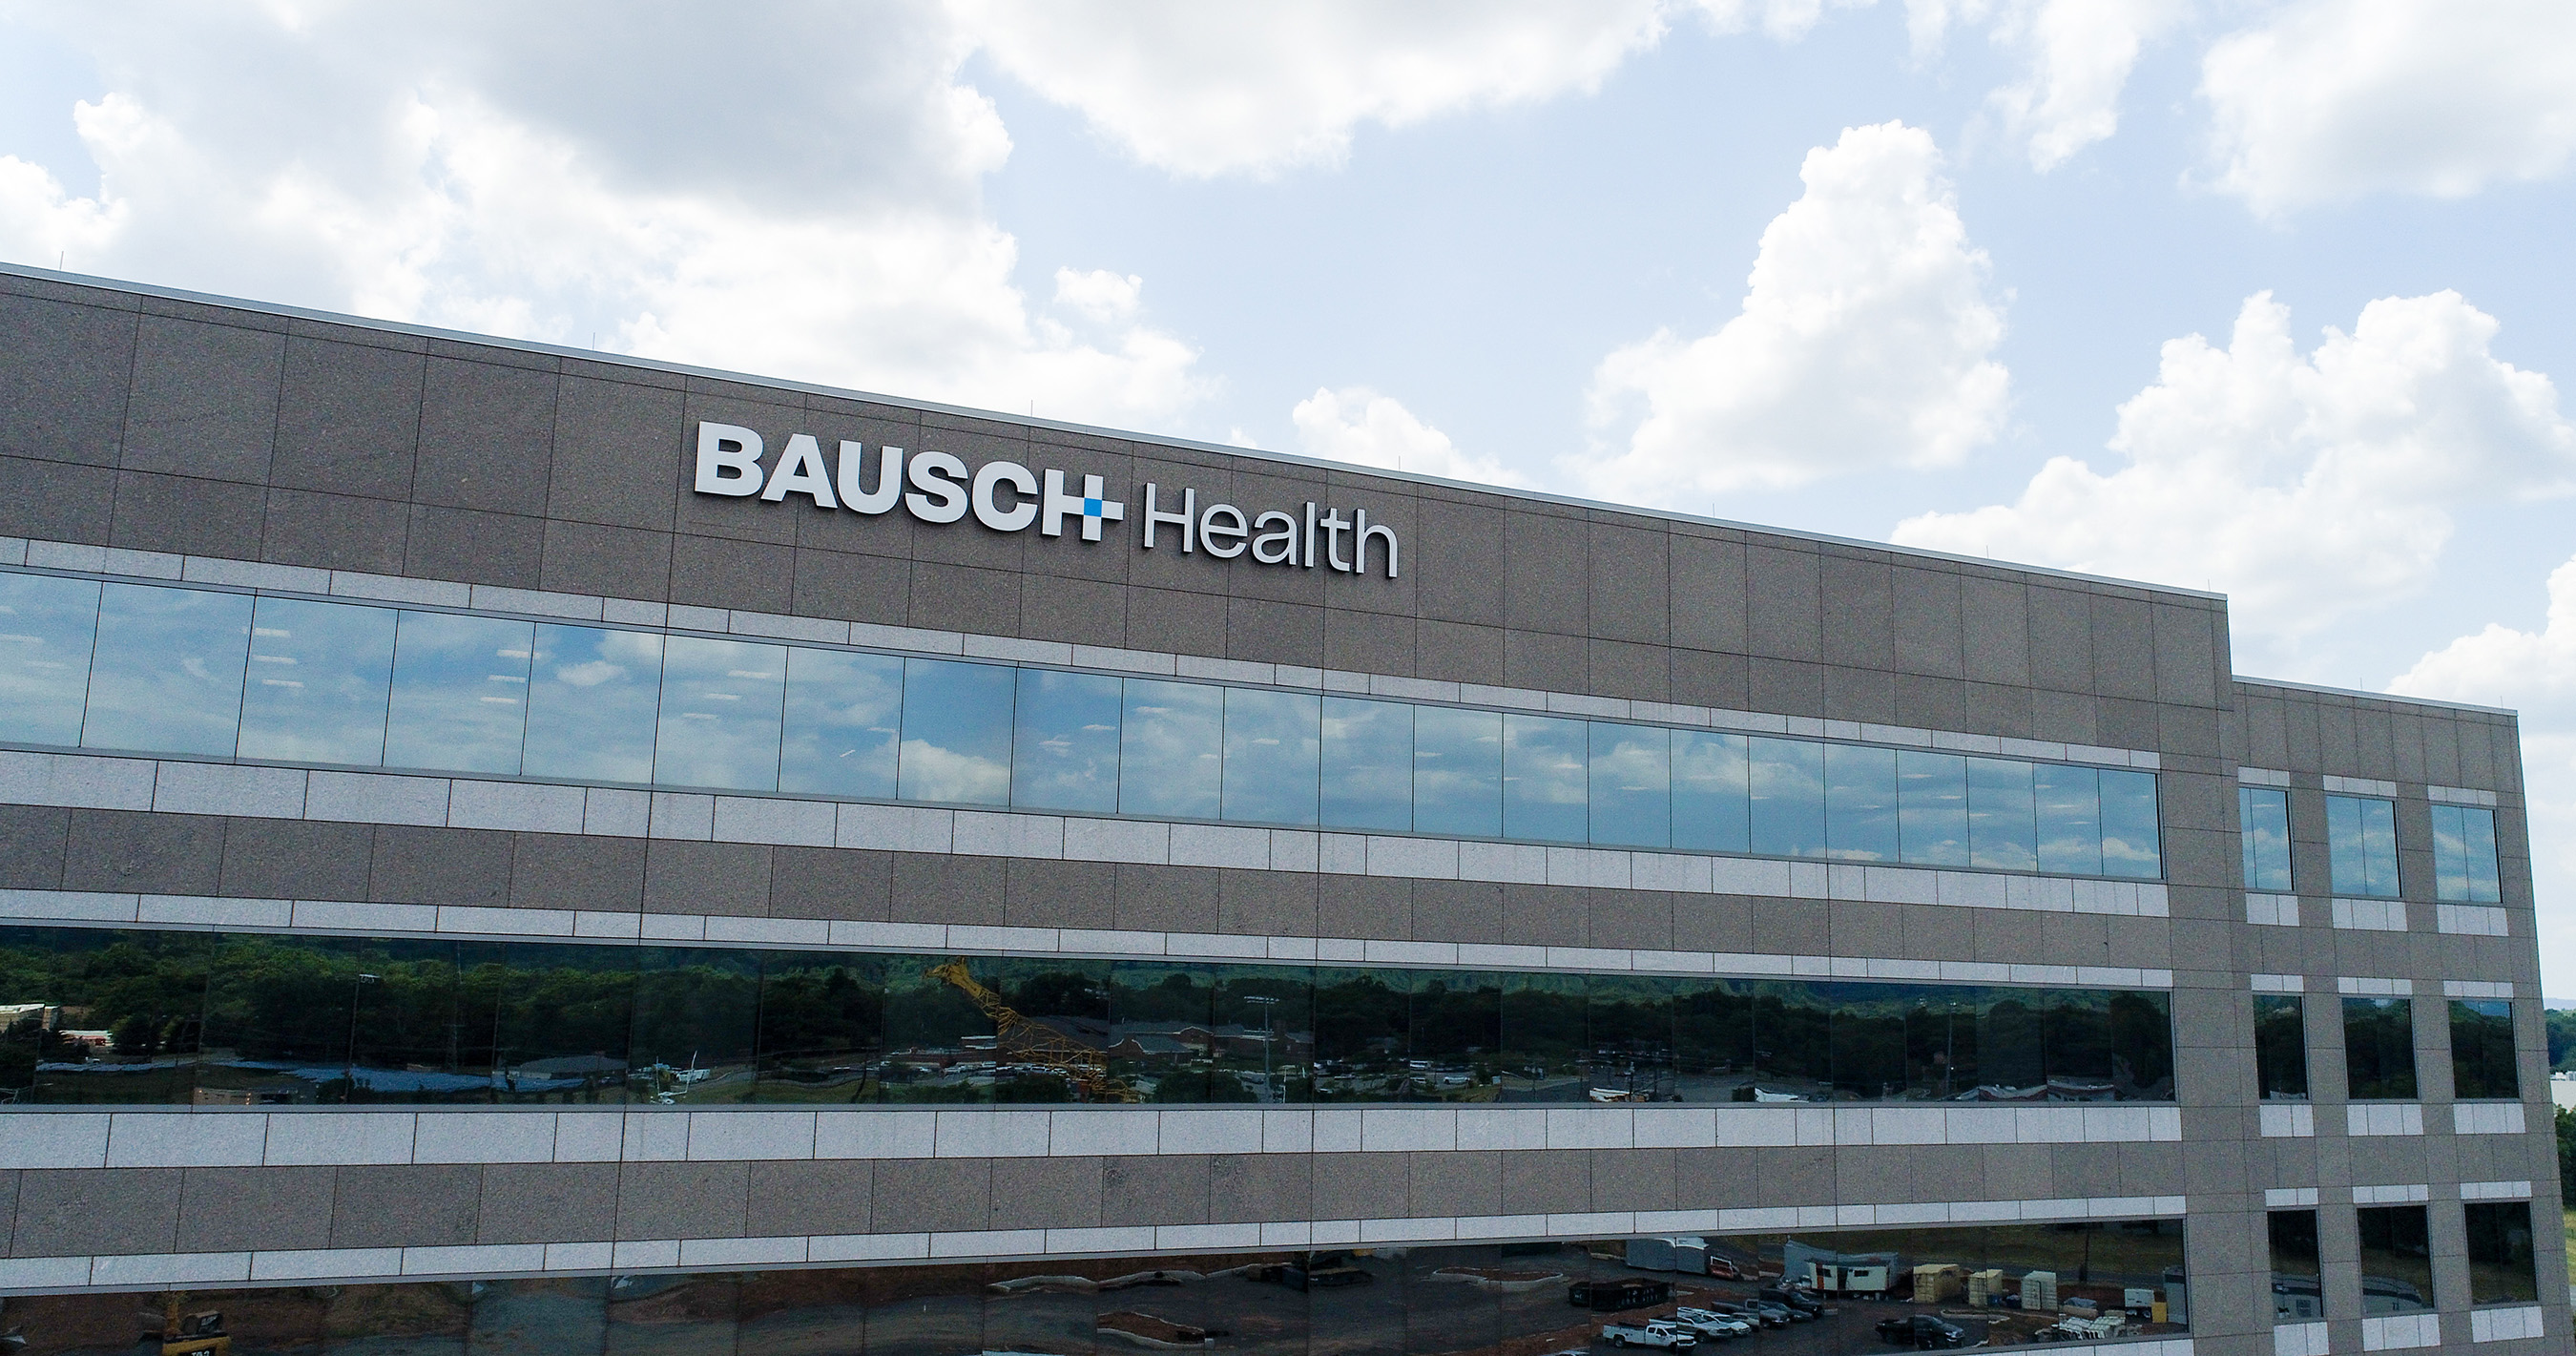 Bausch Health Companies Inc. is a global company whose mission is to improve people's lives with our health care products. Bausch Health manufactures and markets a range of pharmaceutical, medical device and over-the-counter products, primarily in the therapeutic areas of eye health, gastroenterology and dermatology.